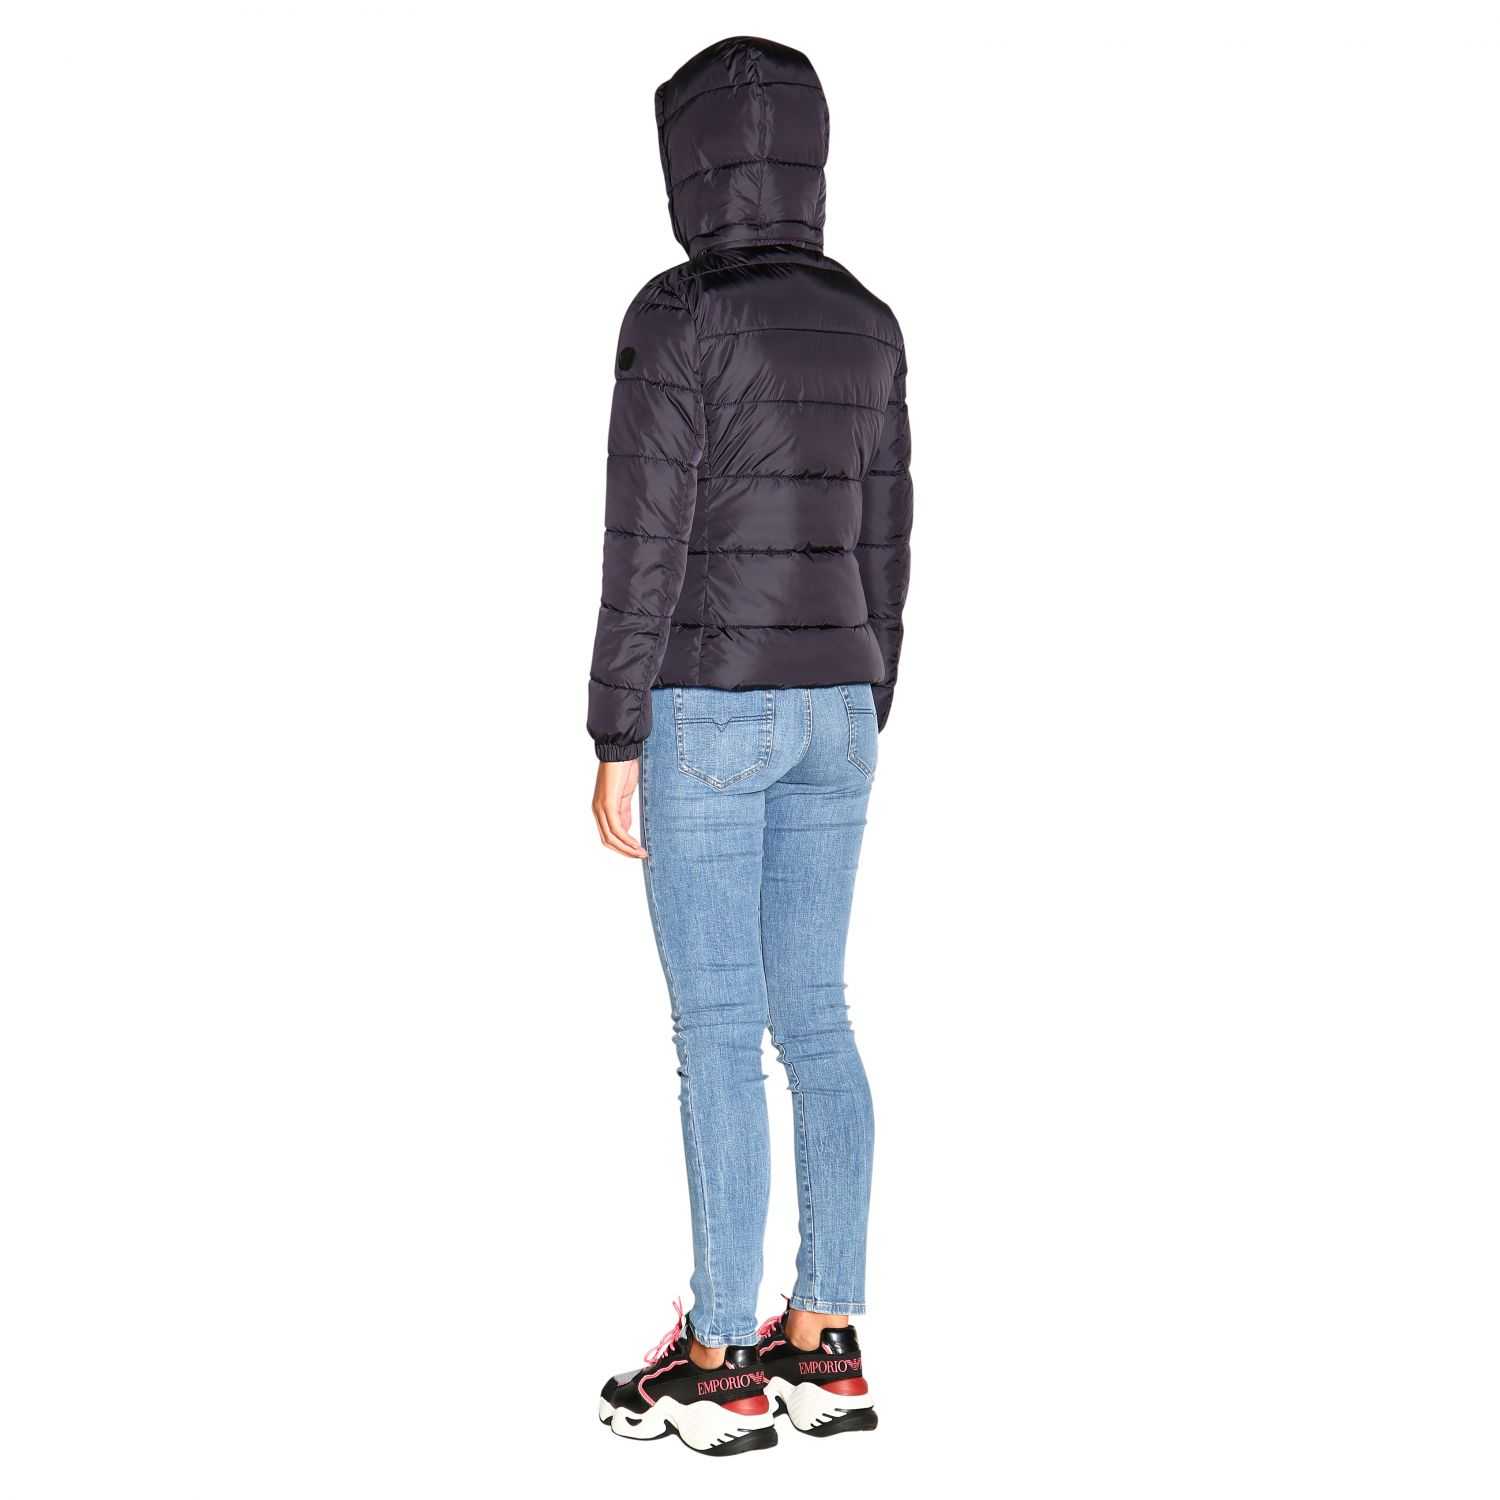 Giacca Save The Duck: Cappotto donna Save The Duck nero 3